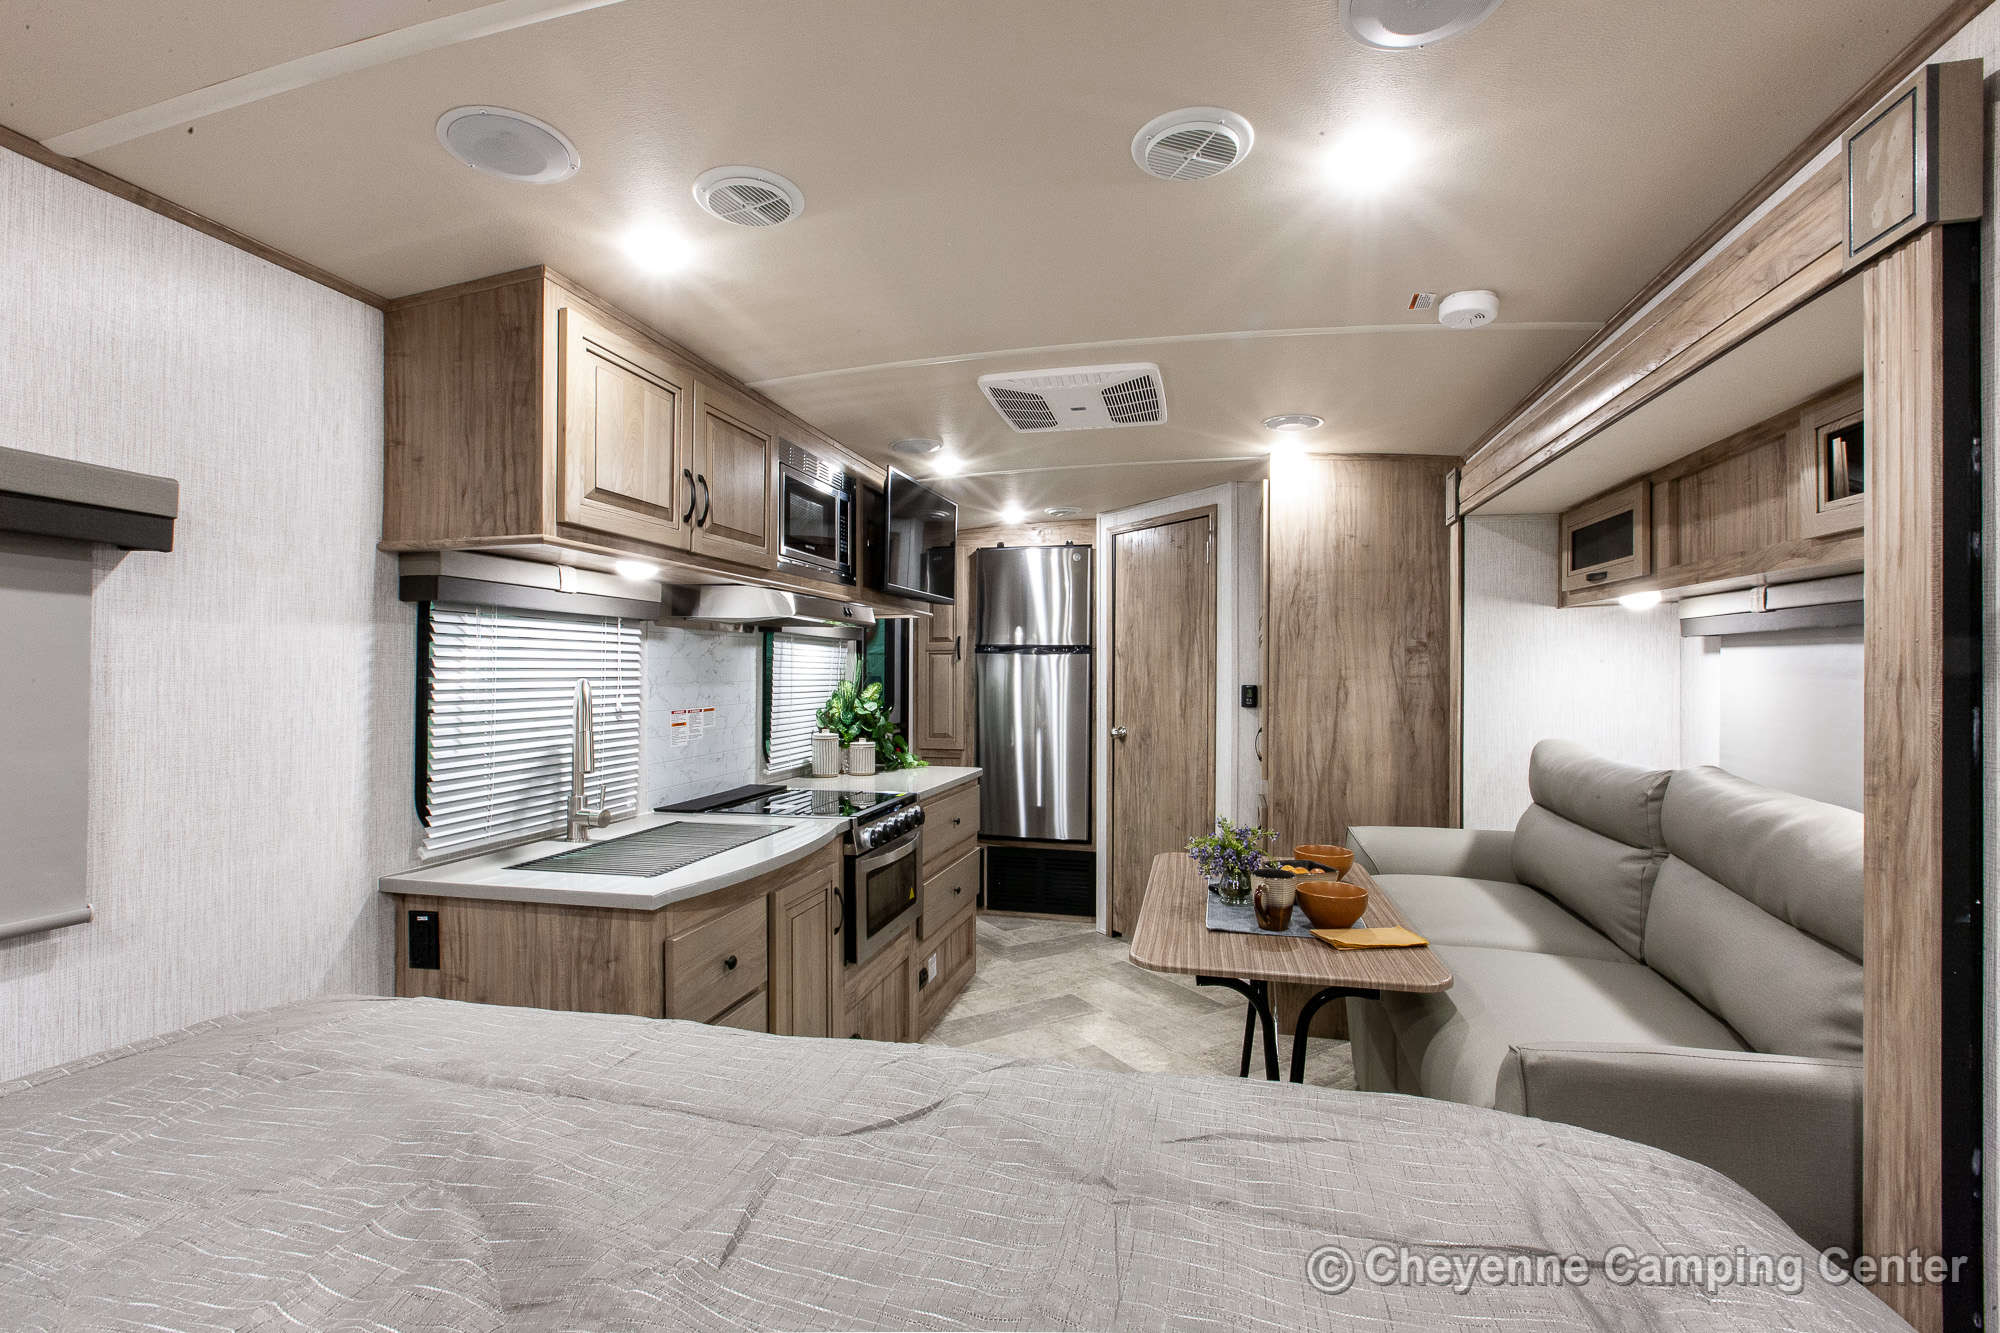 2021 Palomino SolAire Ultra Lite 205SS Travel Trailer Interior Image